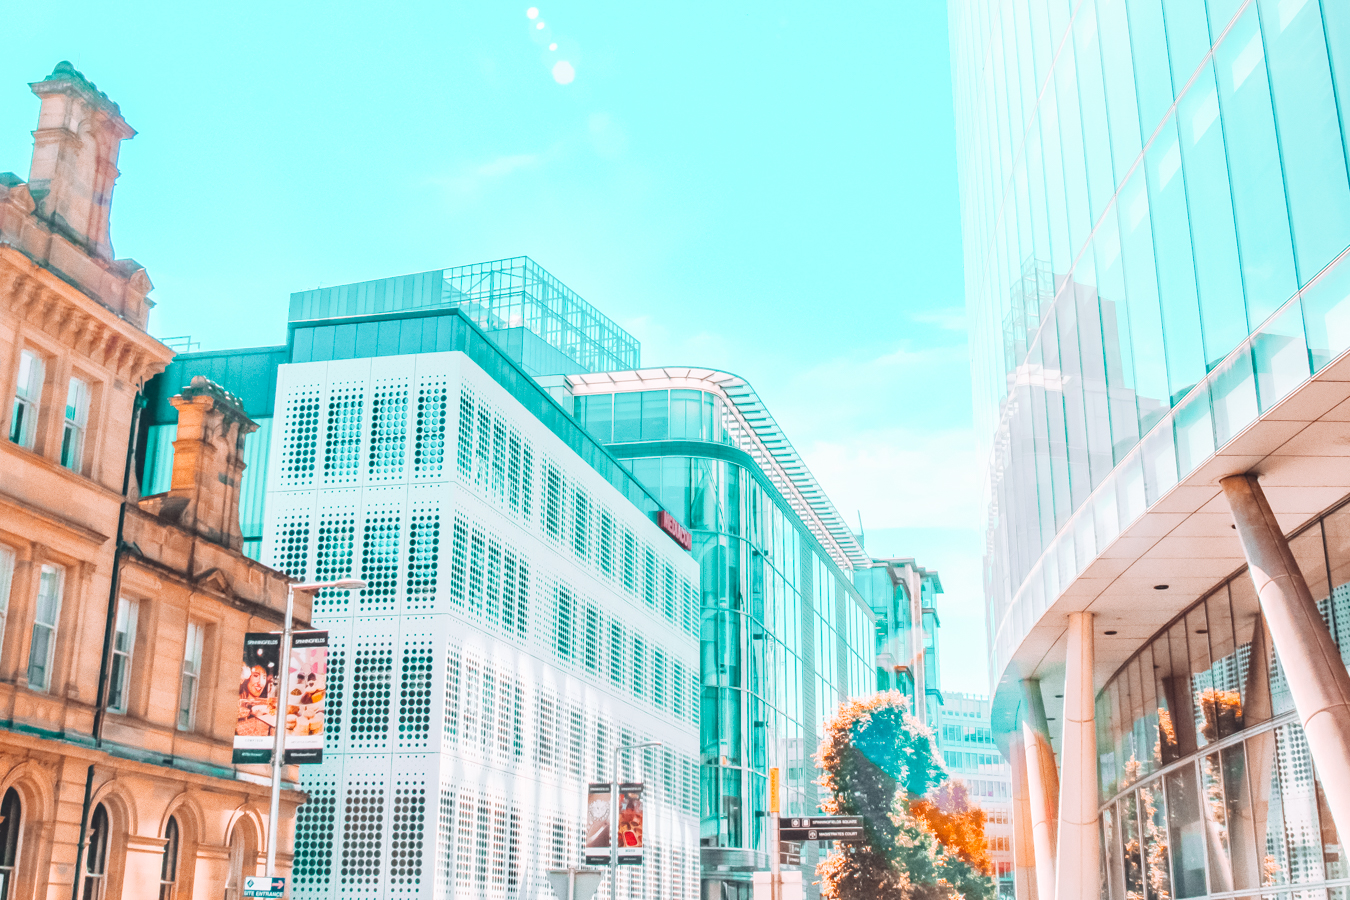 A view of buildings in Manchester